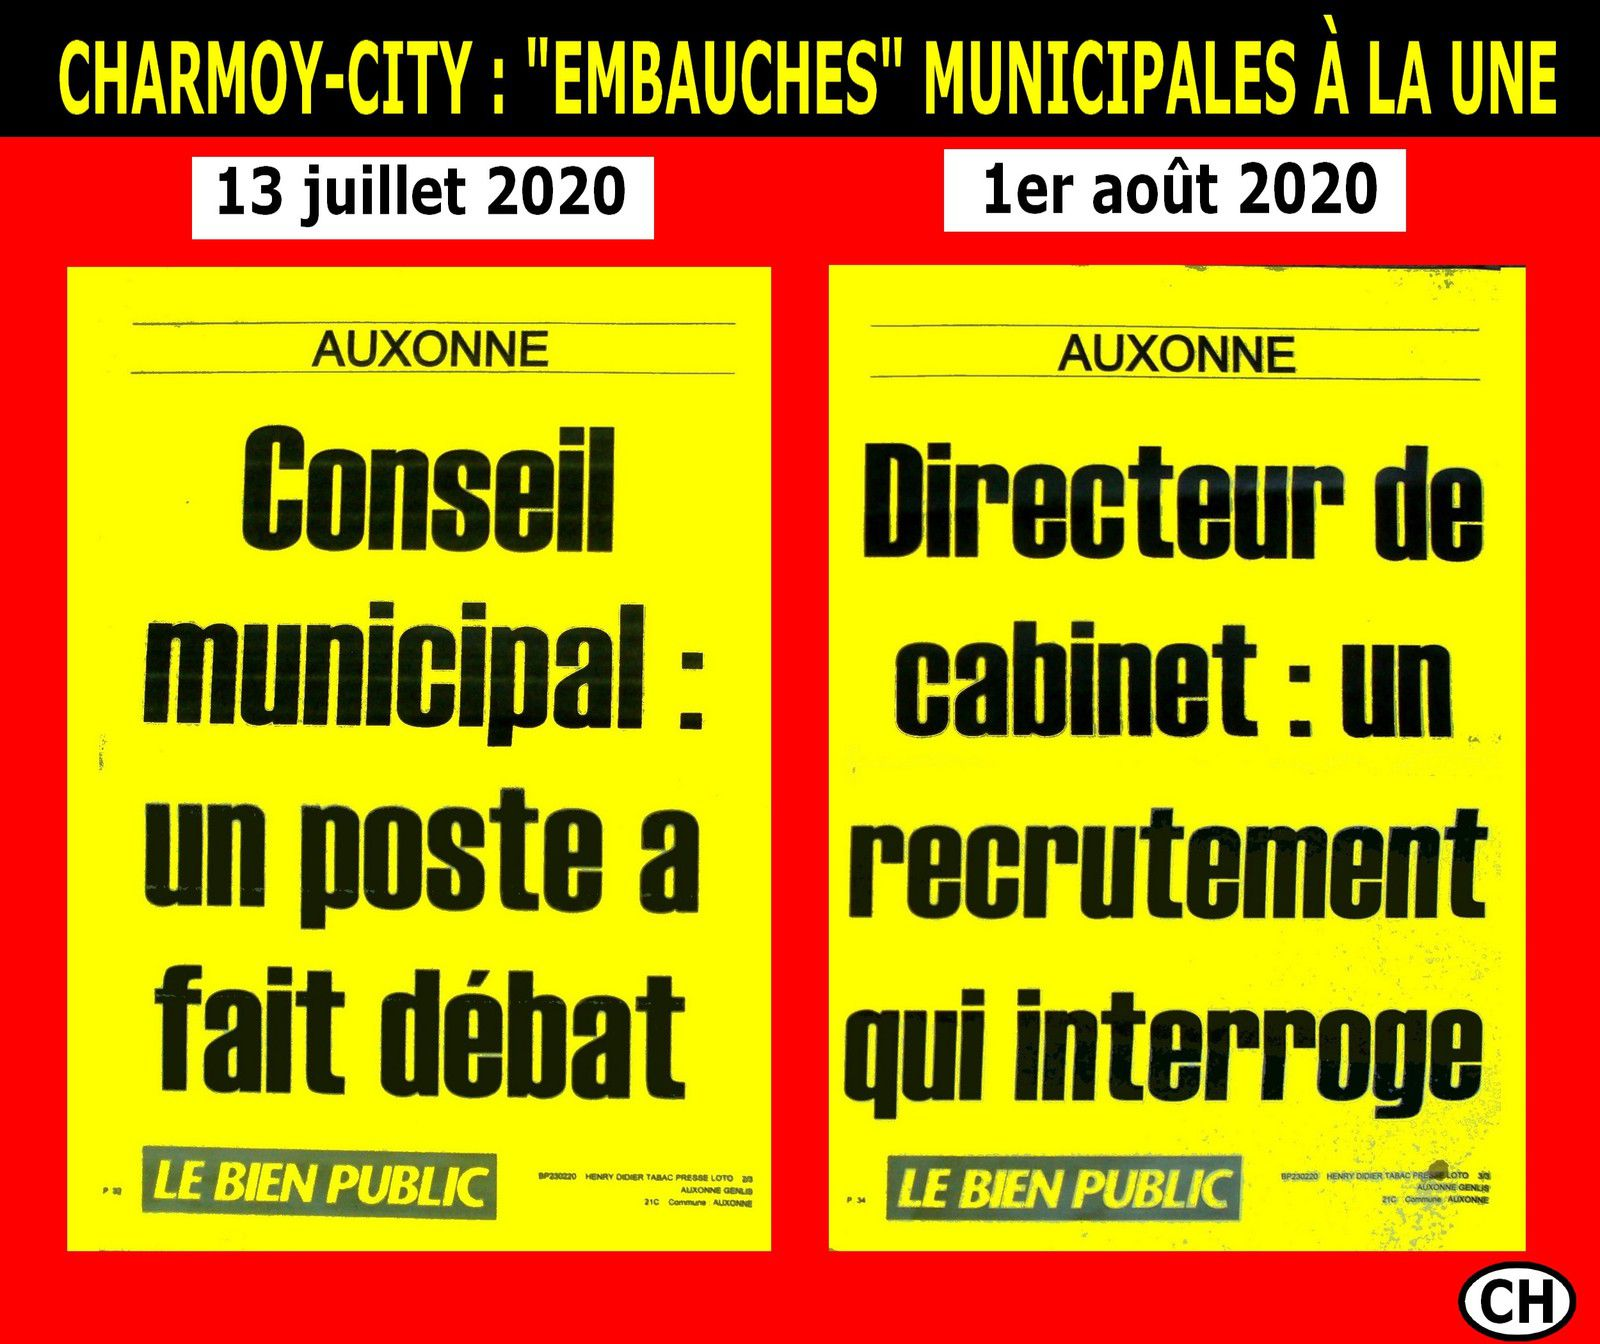 Charmoy-City, embauches municipales à la une.jpg